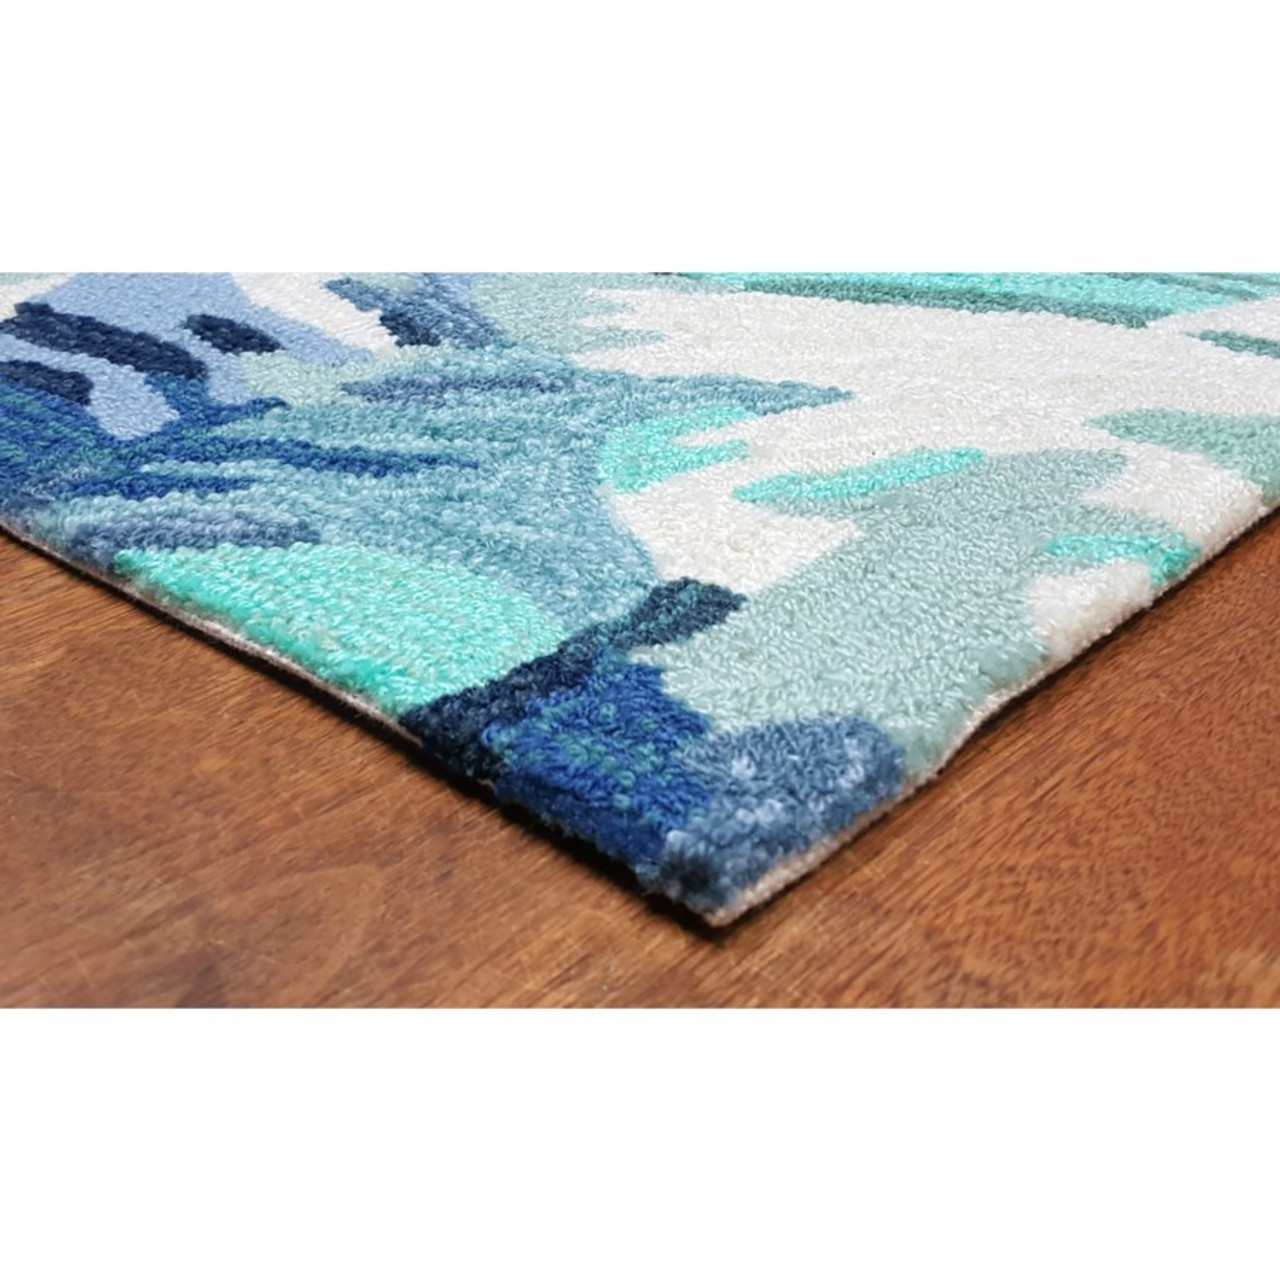 Blue Capri Palm Leaf Indoor/Outdoor Rug -  Pile